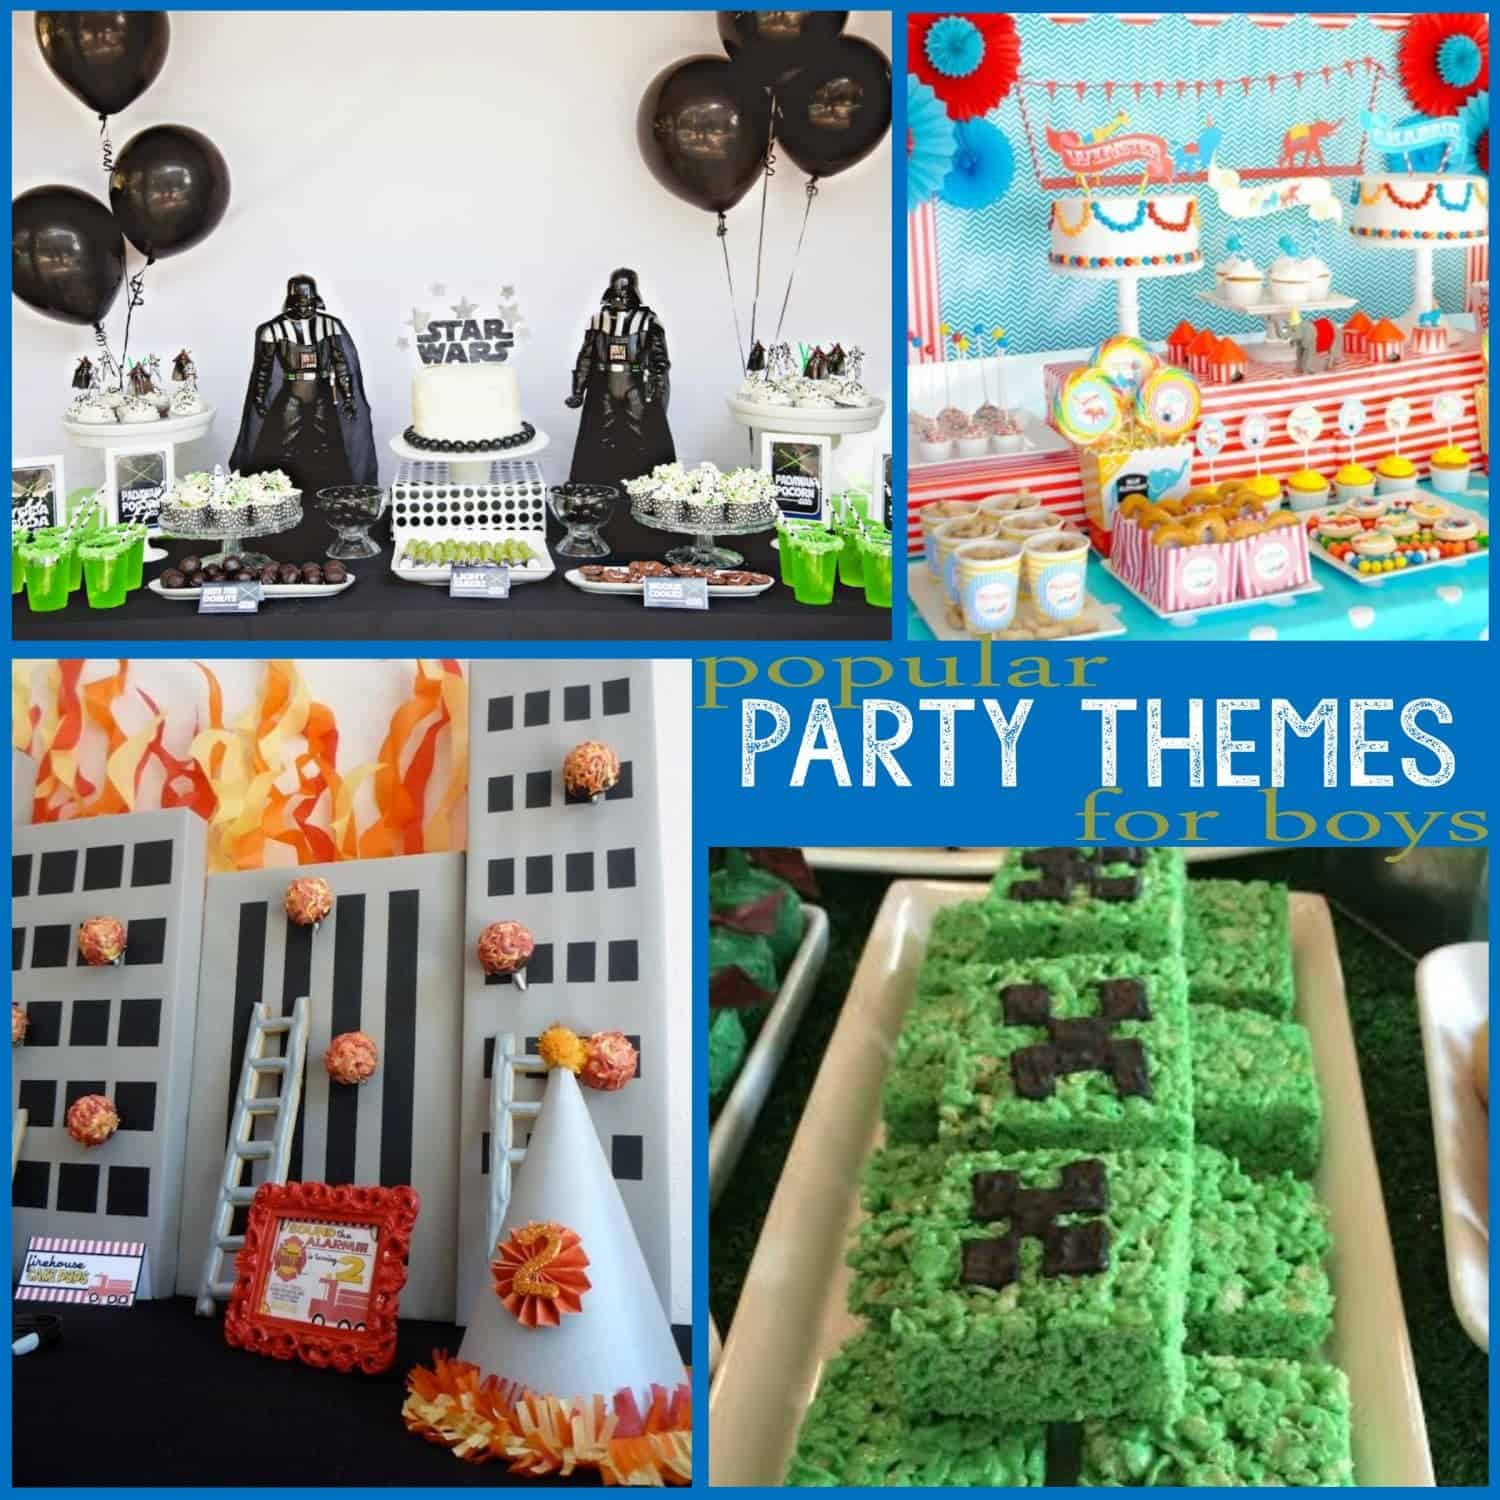 Trends: Popular Party Themes for Boys (Part 1)